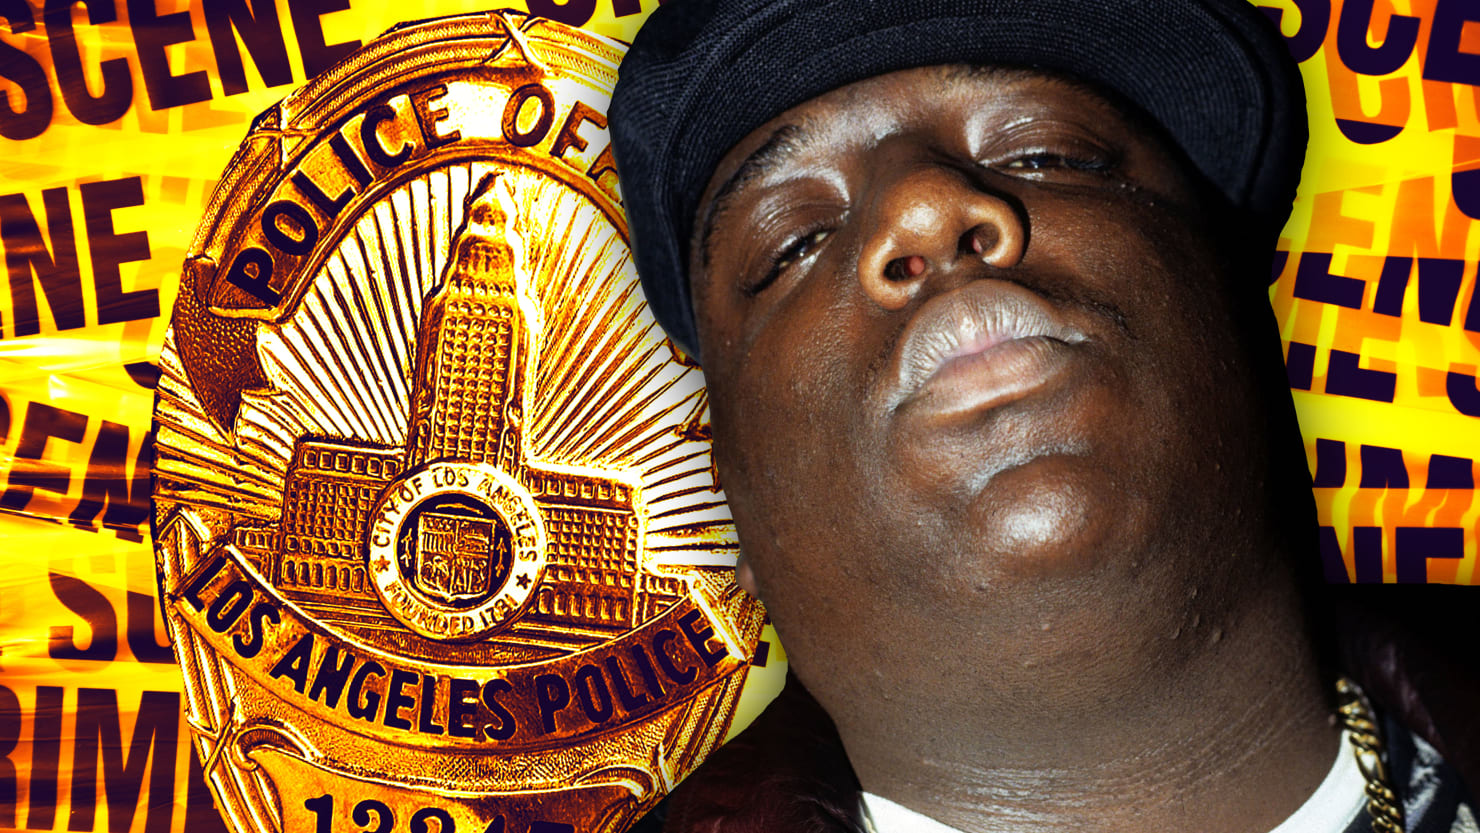 Former FBI Agent: How the LAPD Derailed My Investigation Into Biggie Smalls' Murder